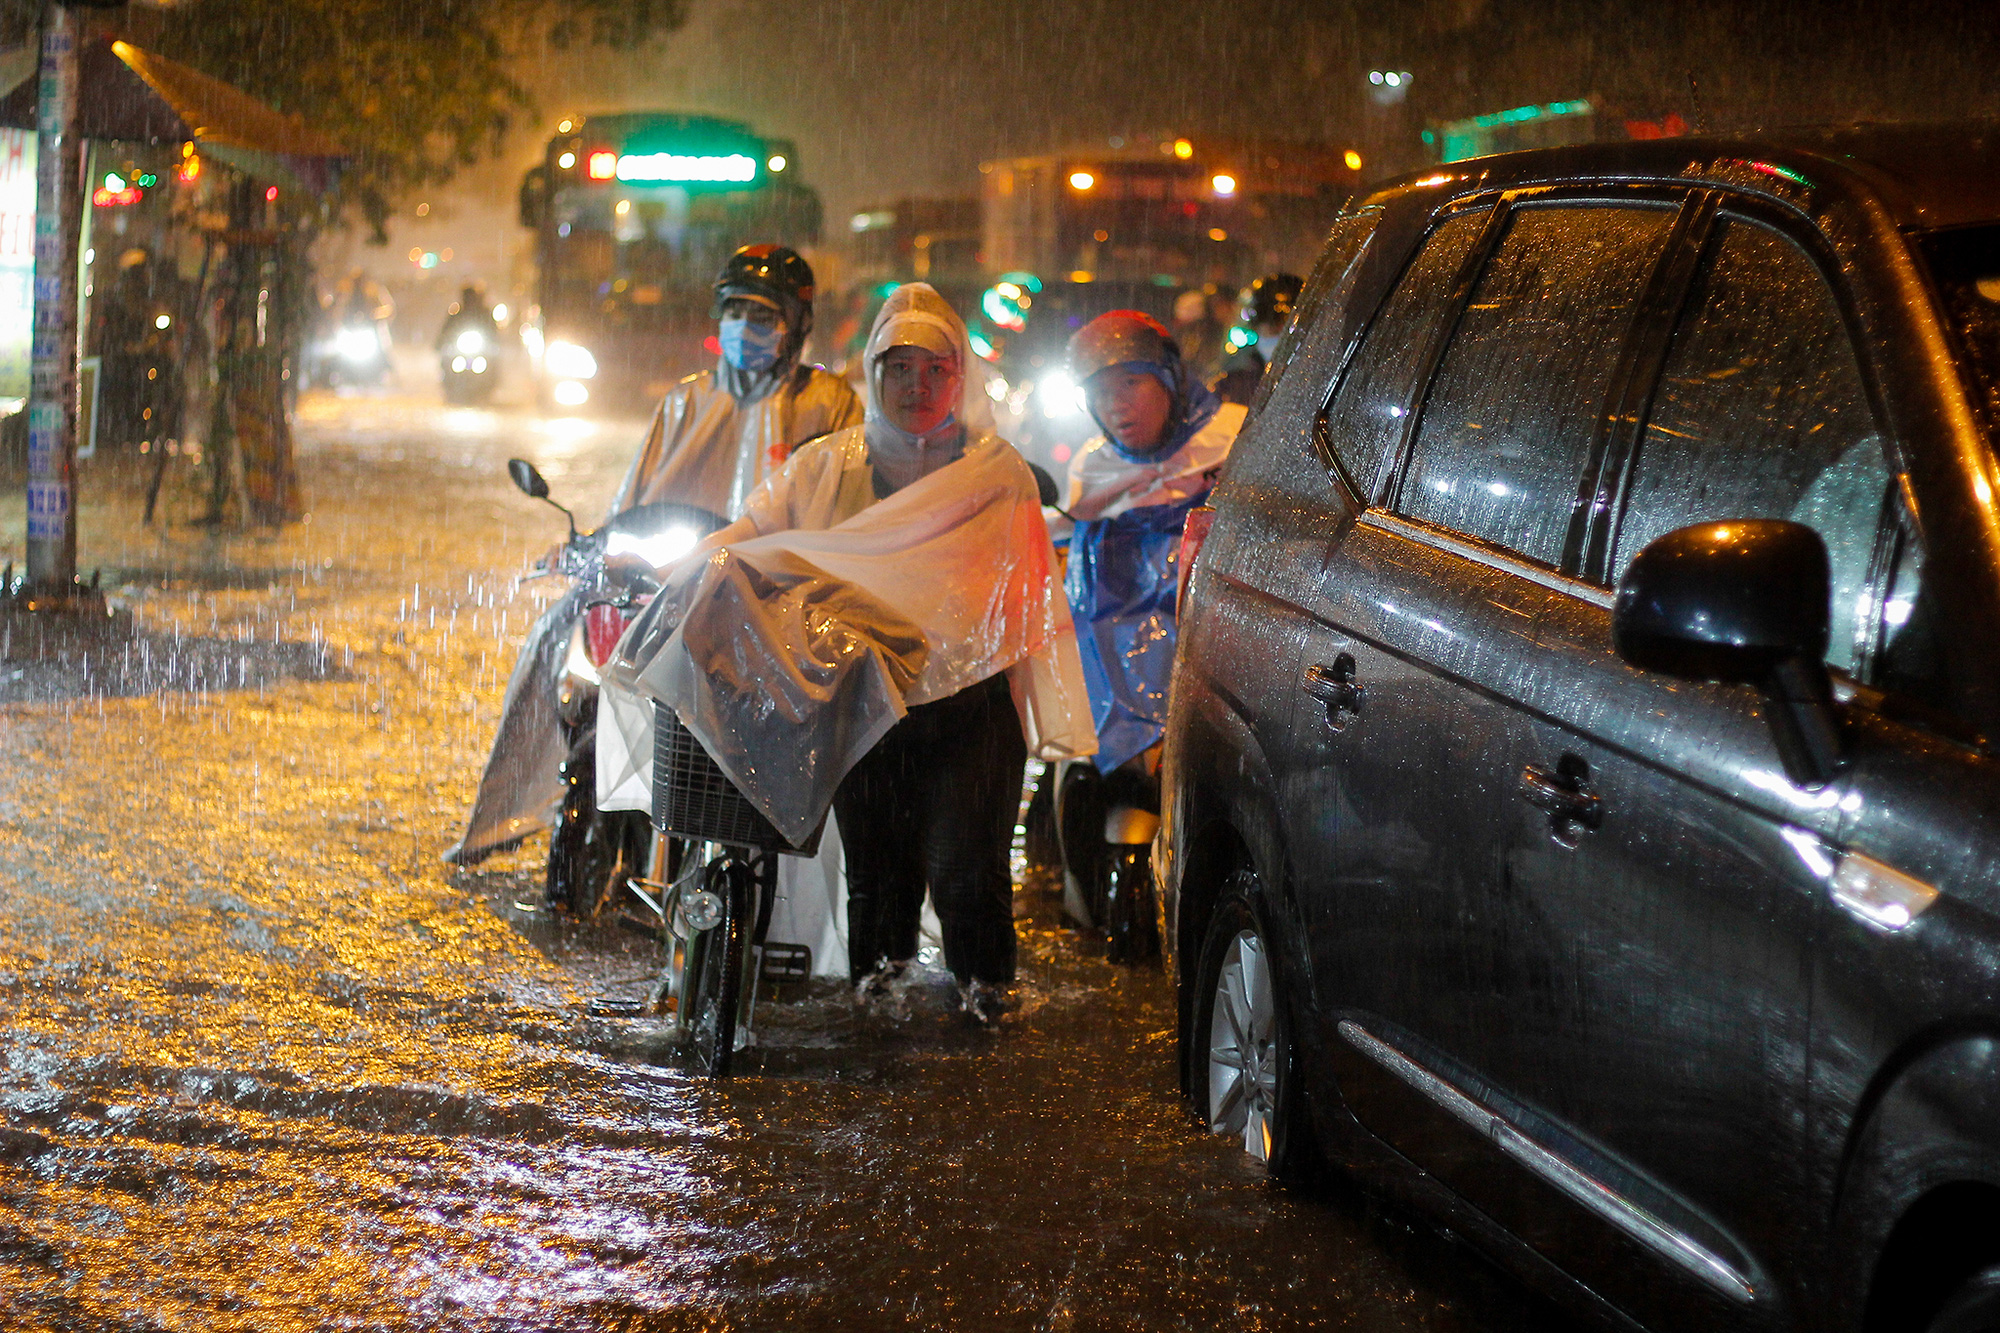 Rain to intensify in southern Vietnam over next 10 days